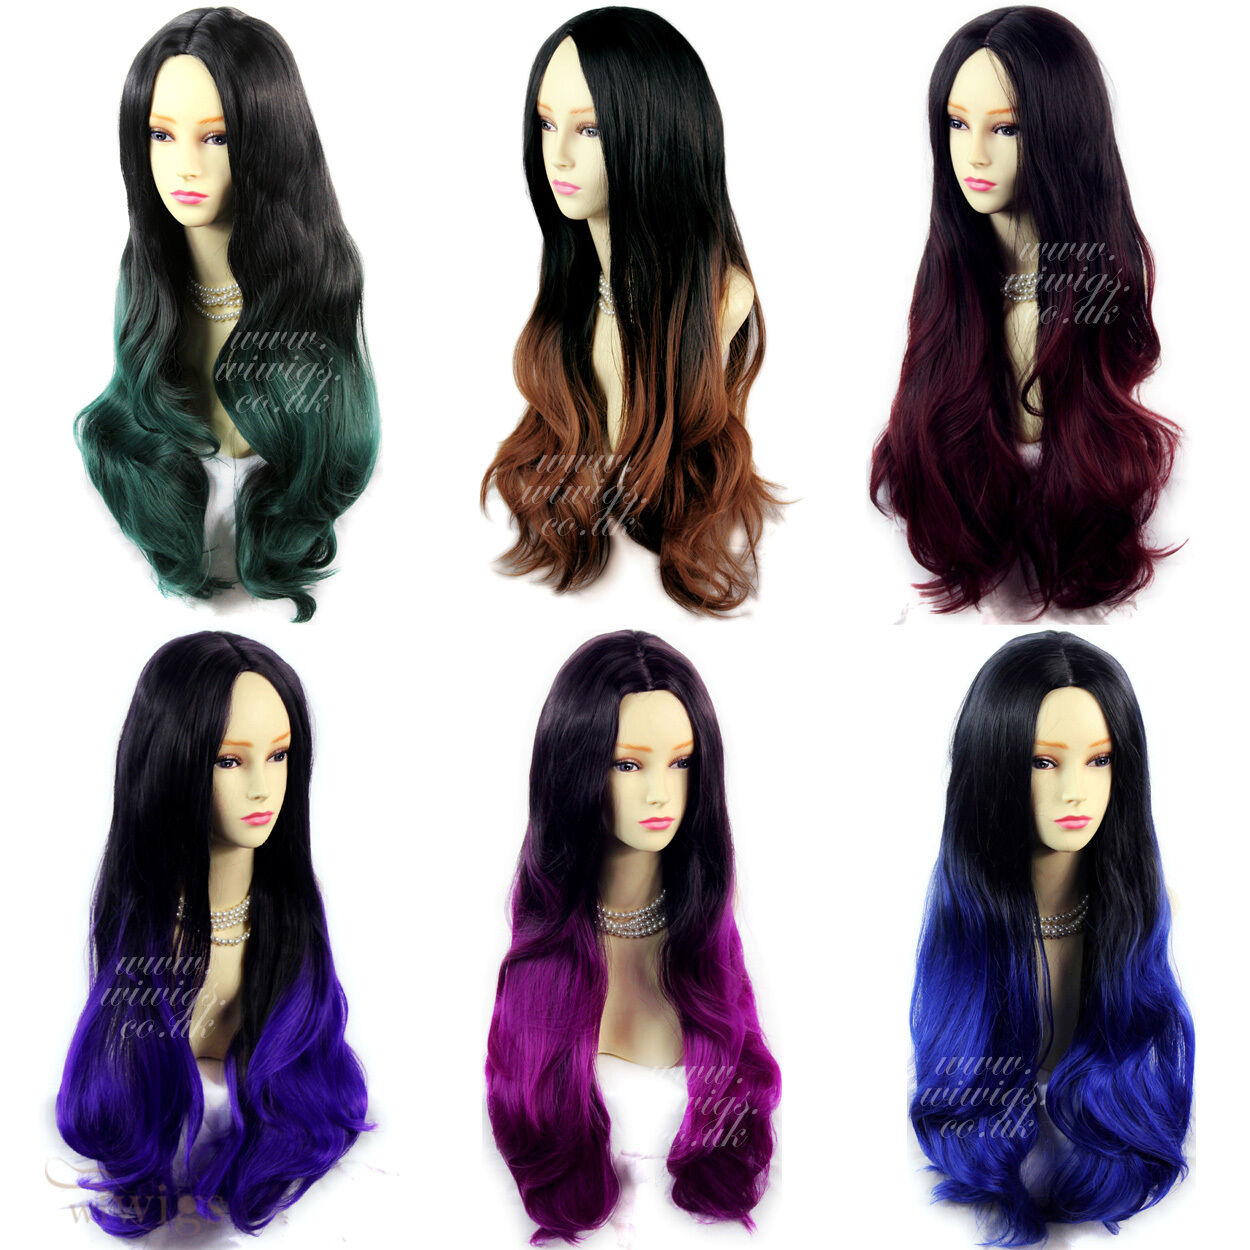 Wiwigs Long Wavy Ombre Dip Dye Ladies Wigs Black Brown Red Blue